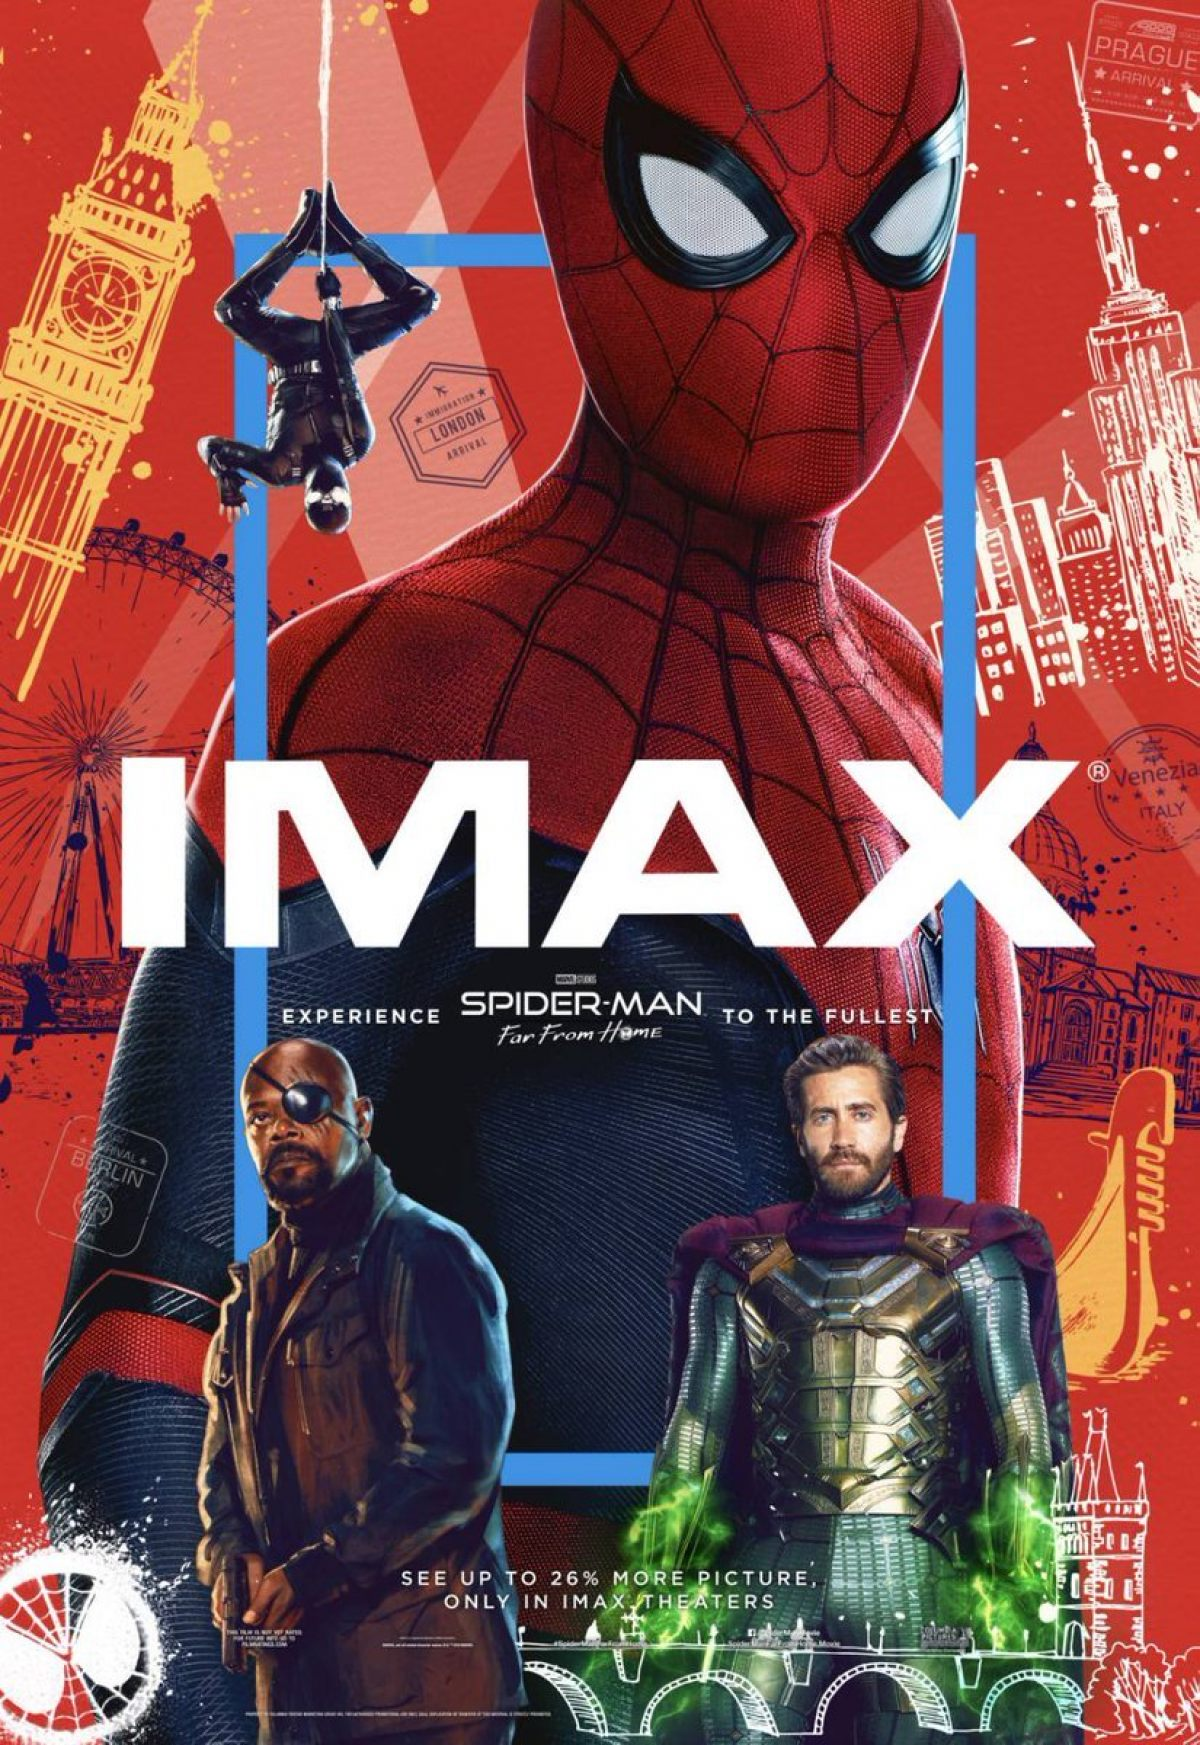 The IMAX Poster For SPIDER-MAN: FAR FROM HOME Maintains